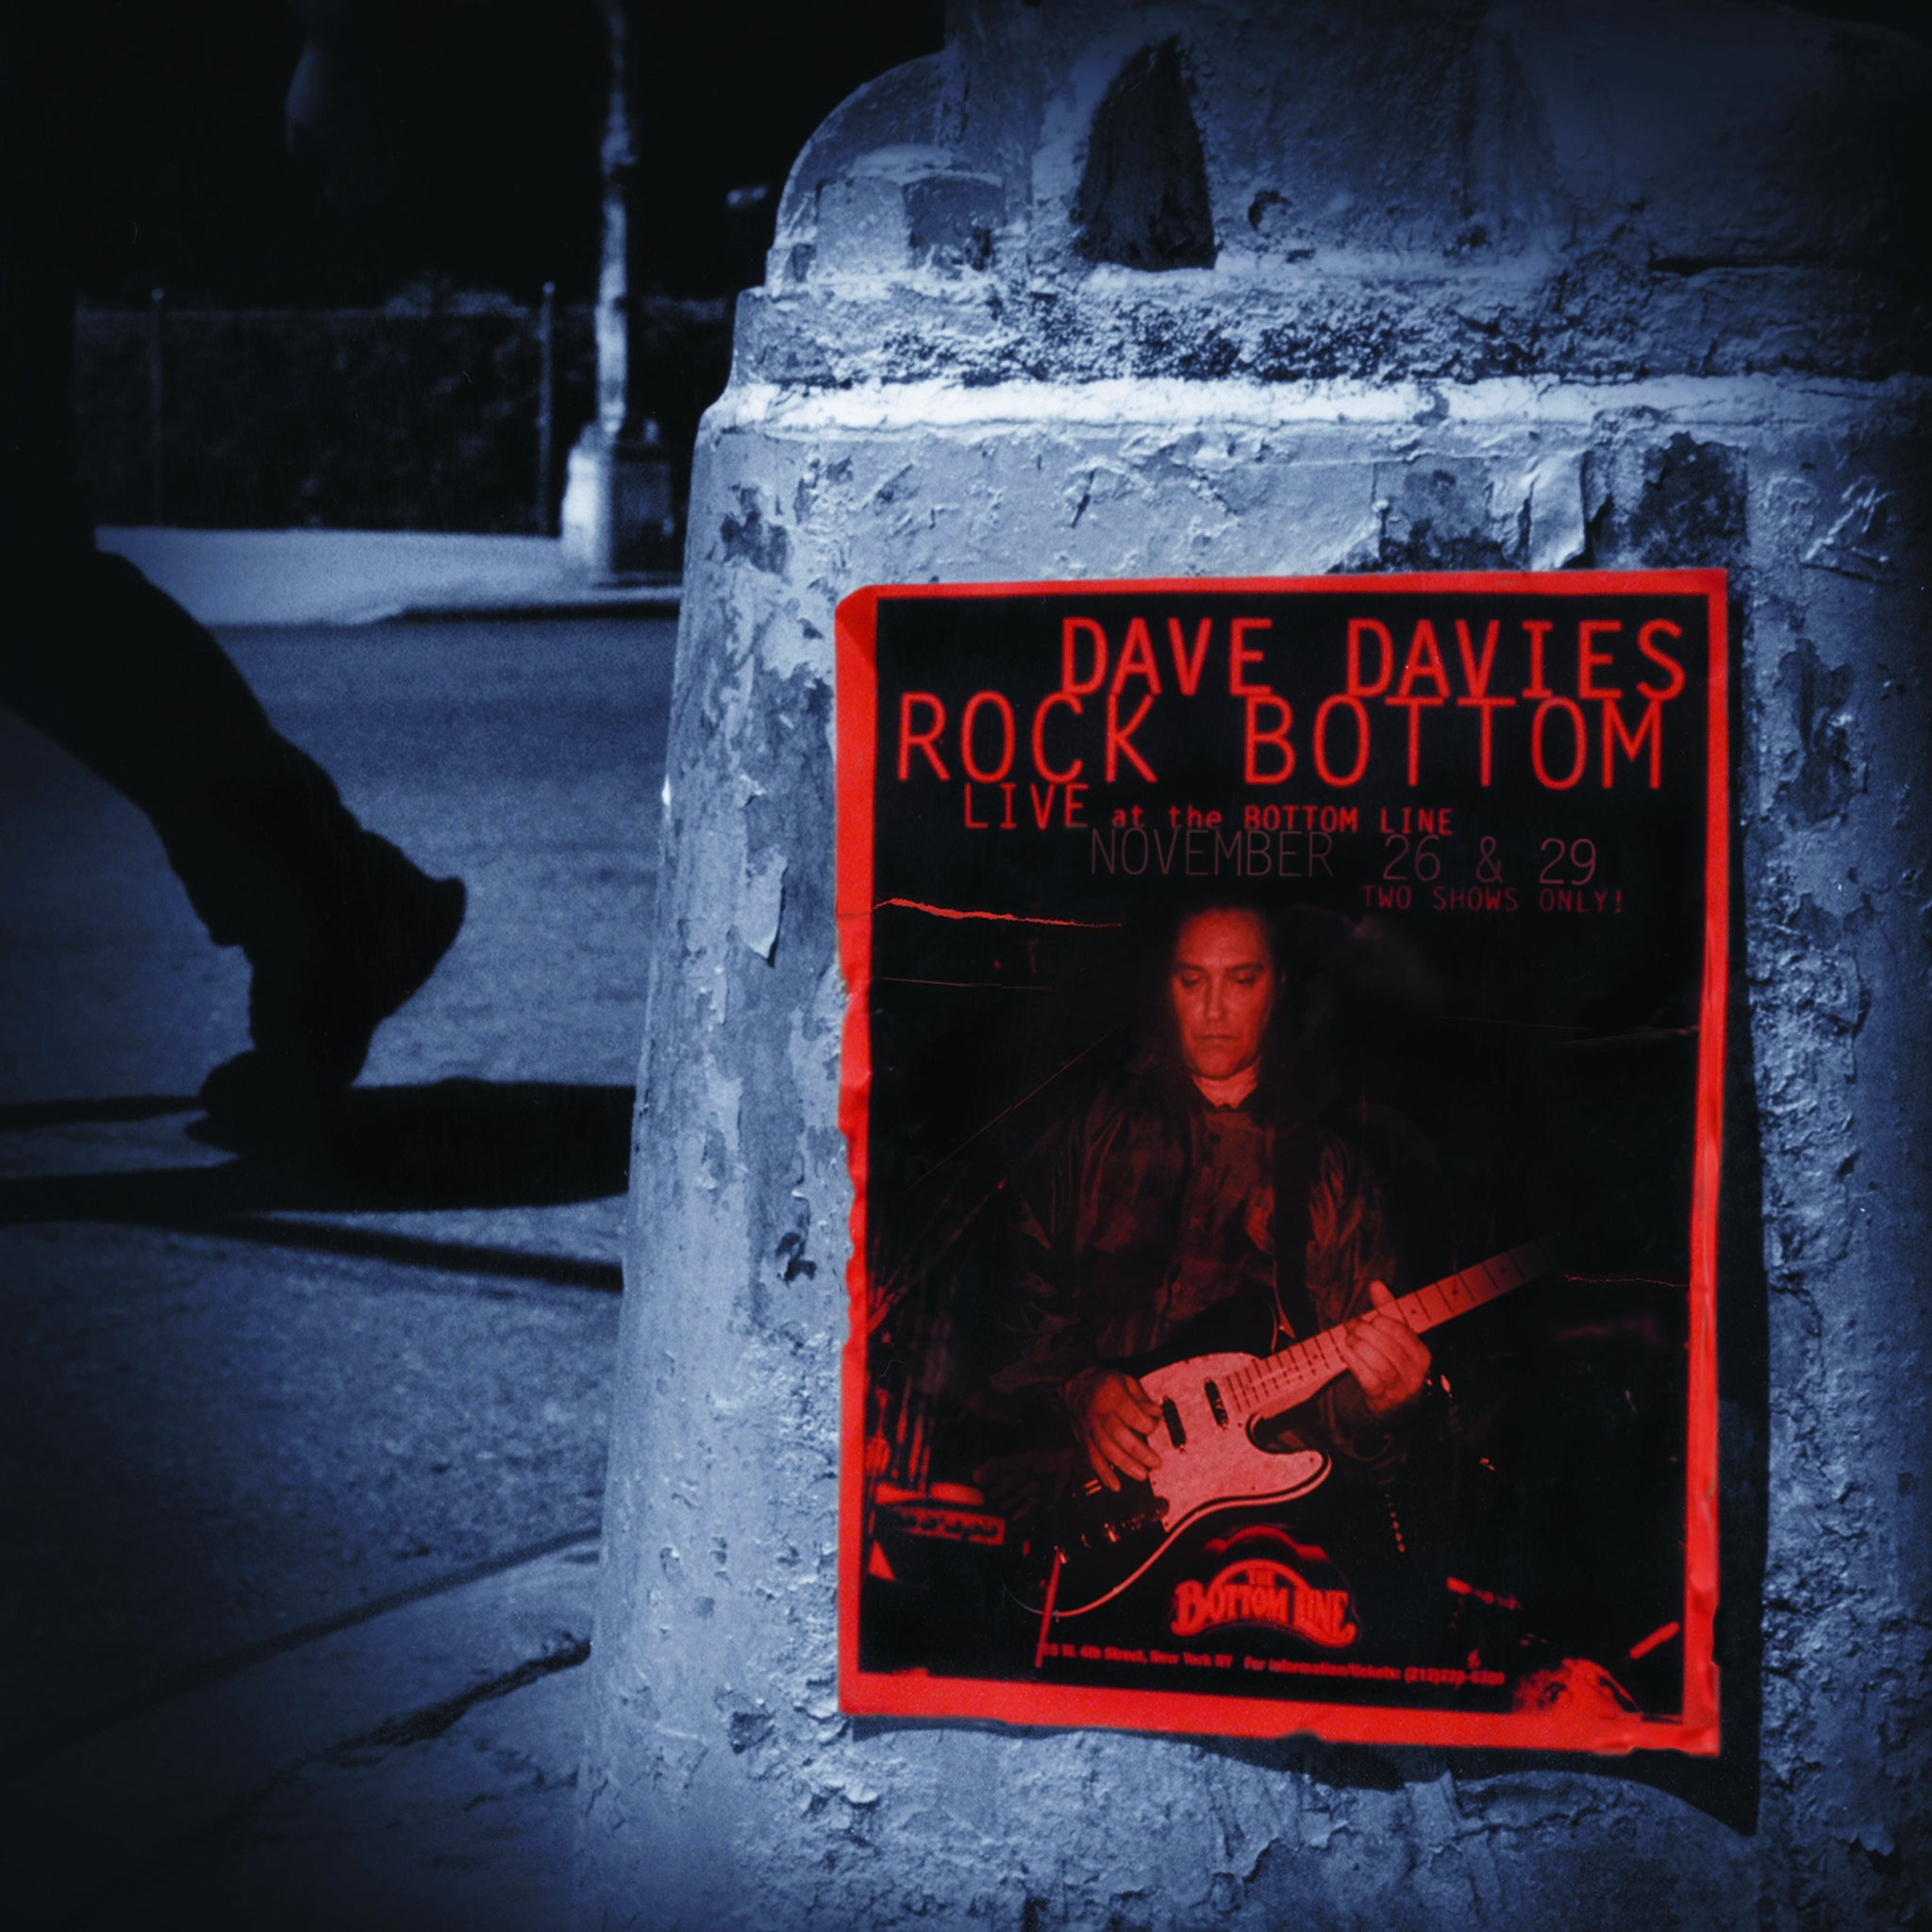 Dave Davies - Rock Bottom: Live at the Bottom Line (Remastered 20th Anniversary Limited Edition, Red & Silver 2LP)